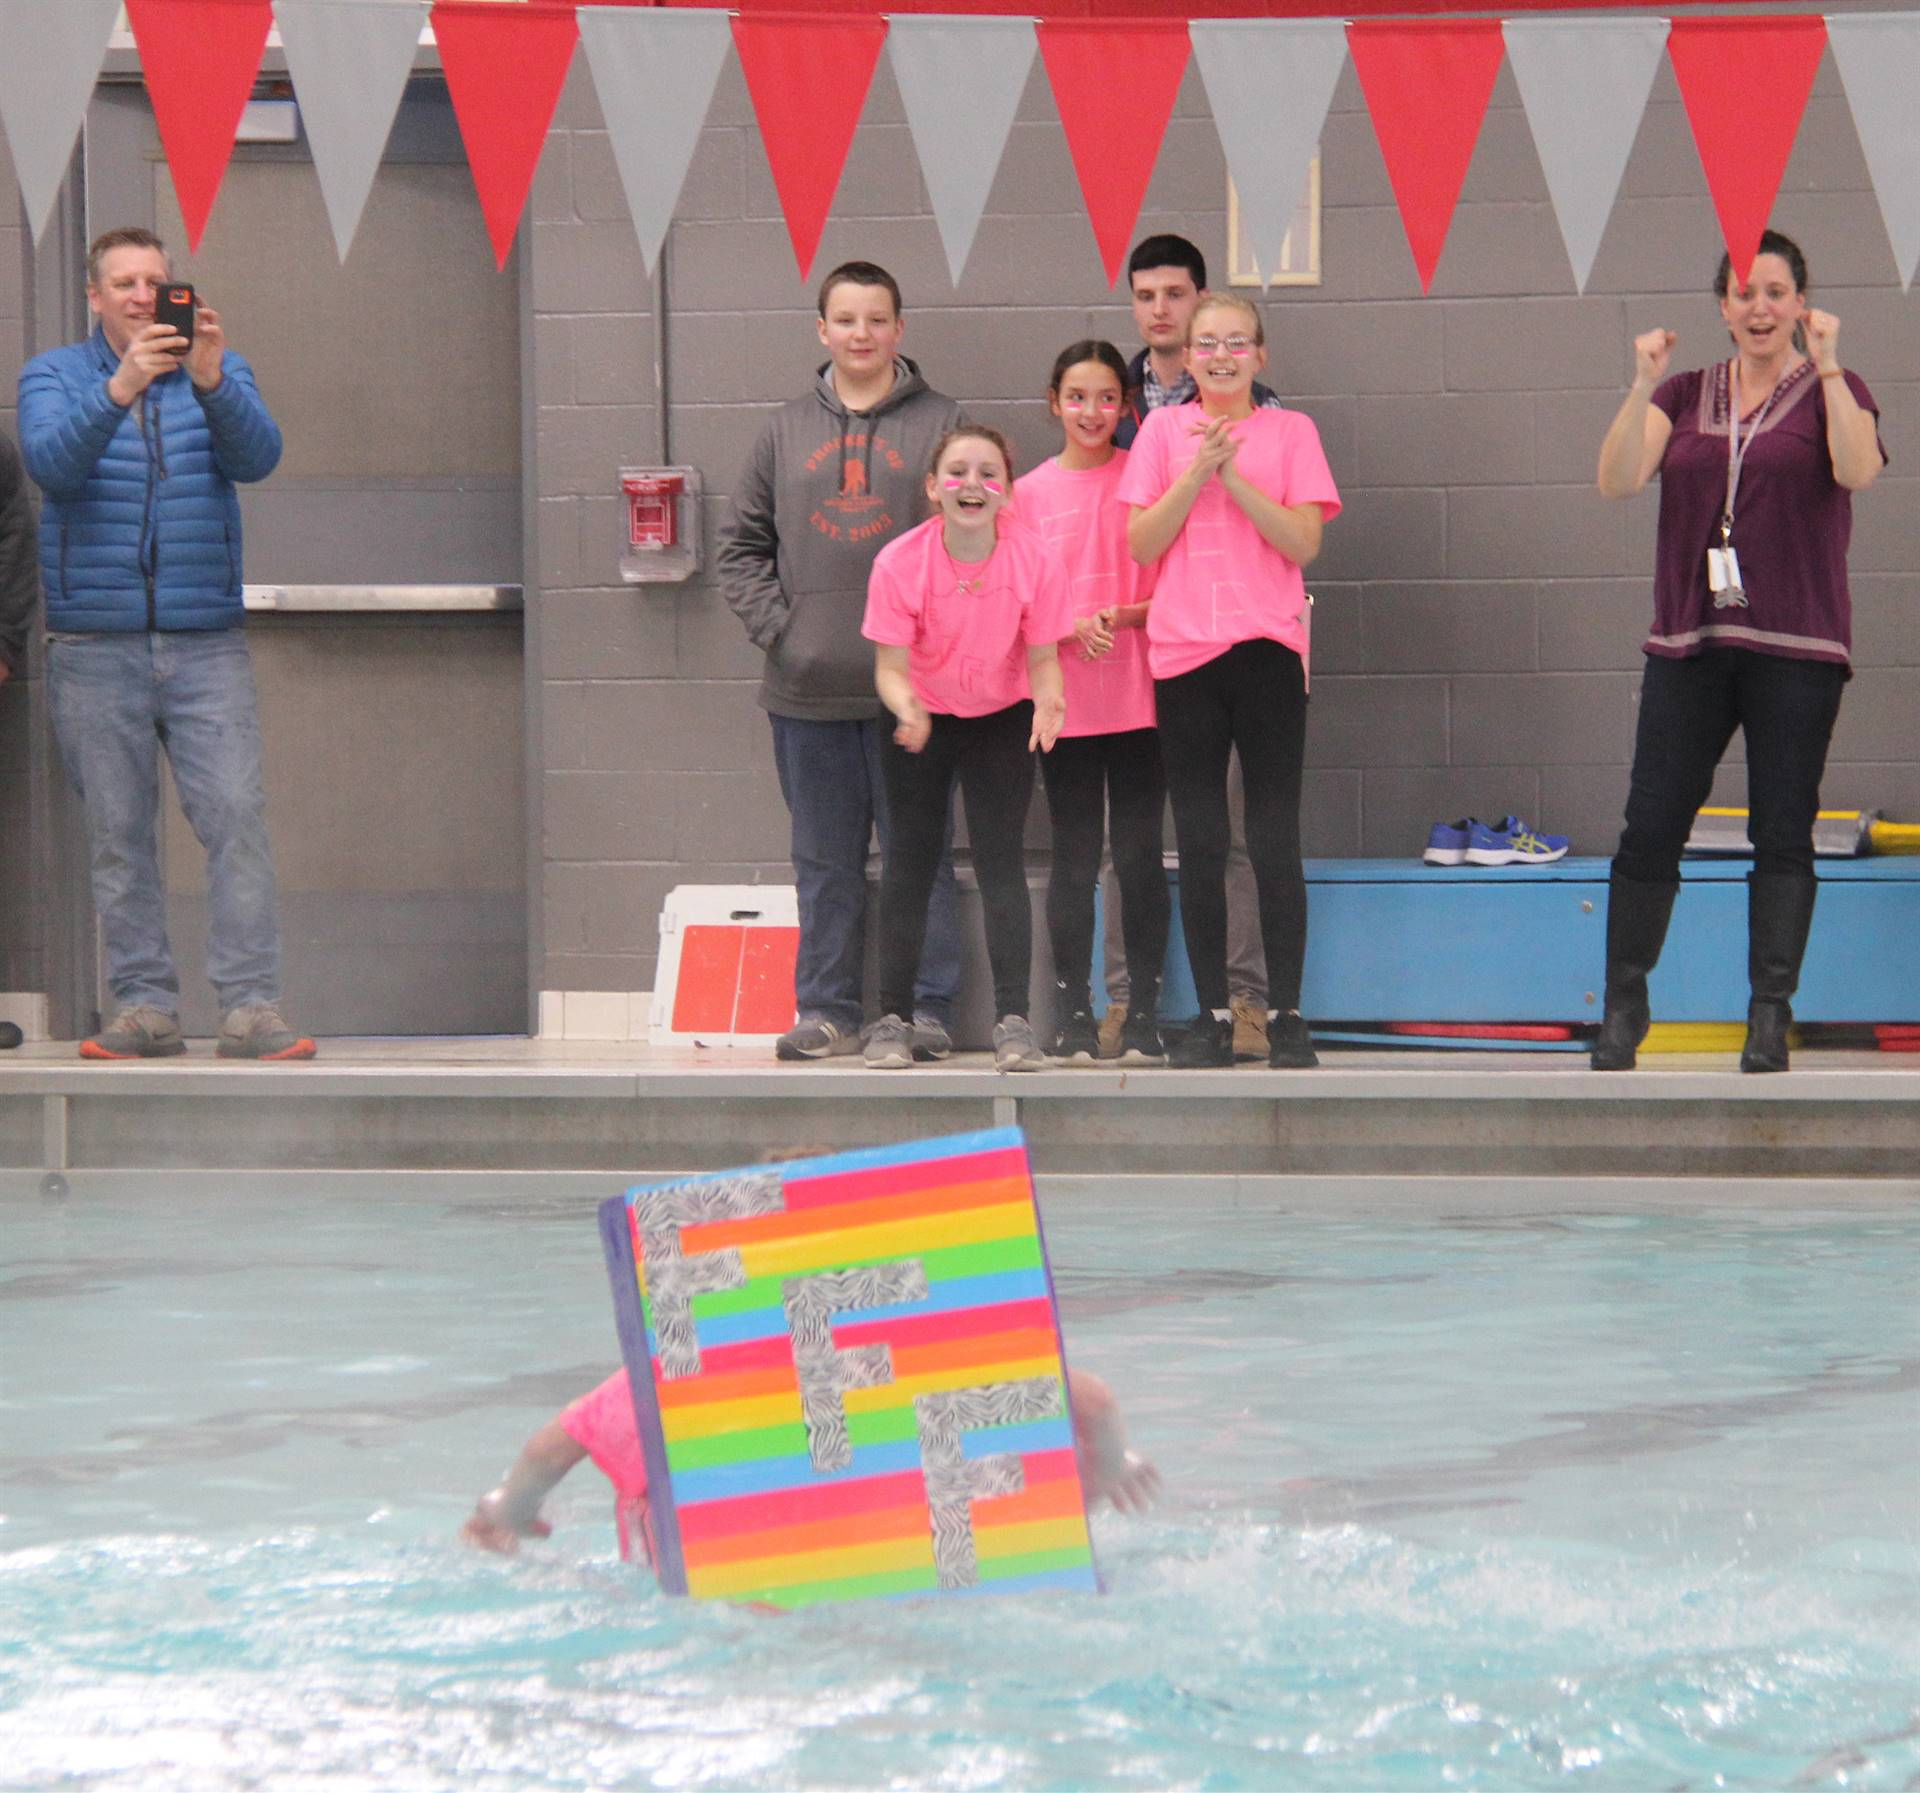 students competing in cardboard boat race